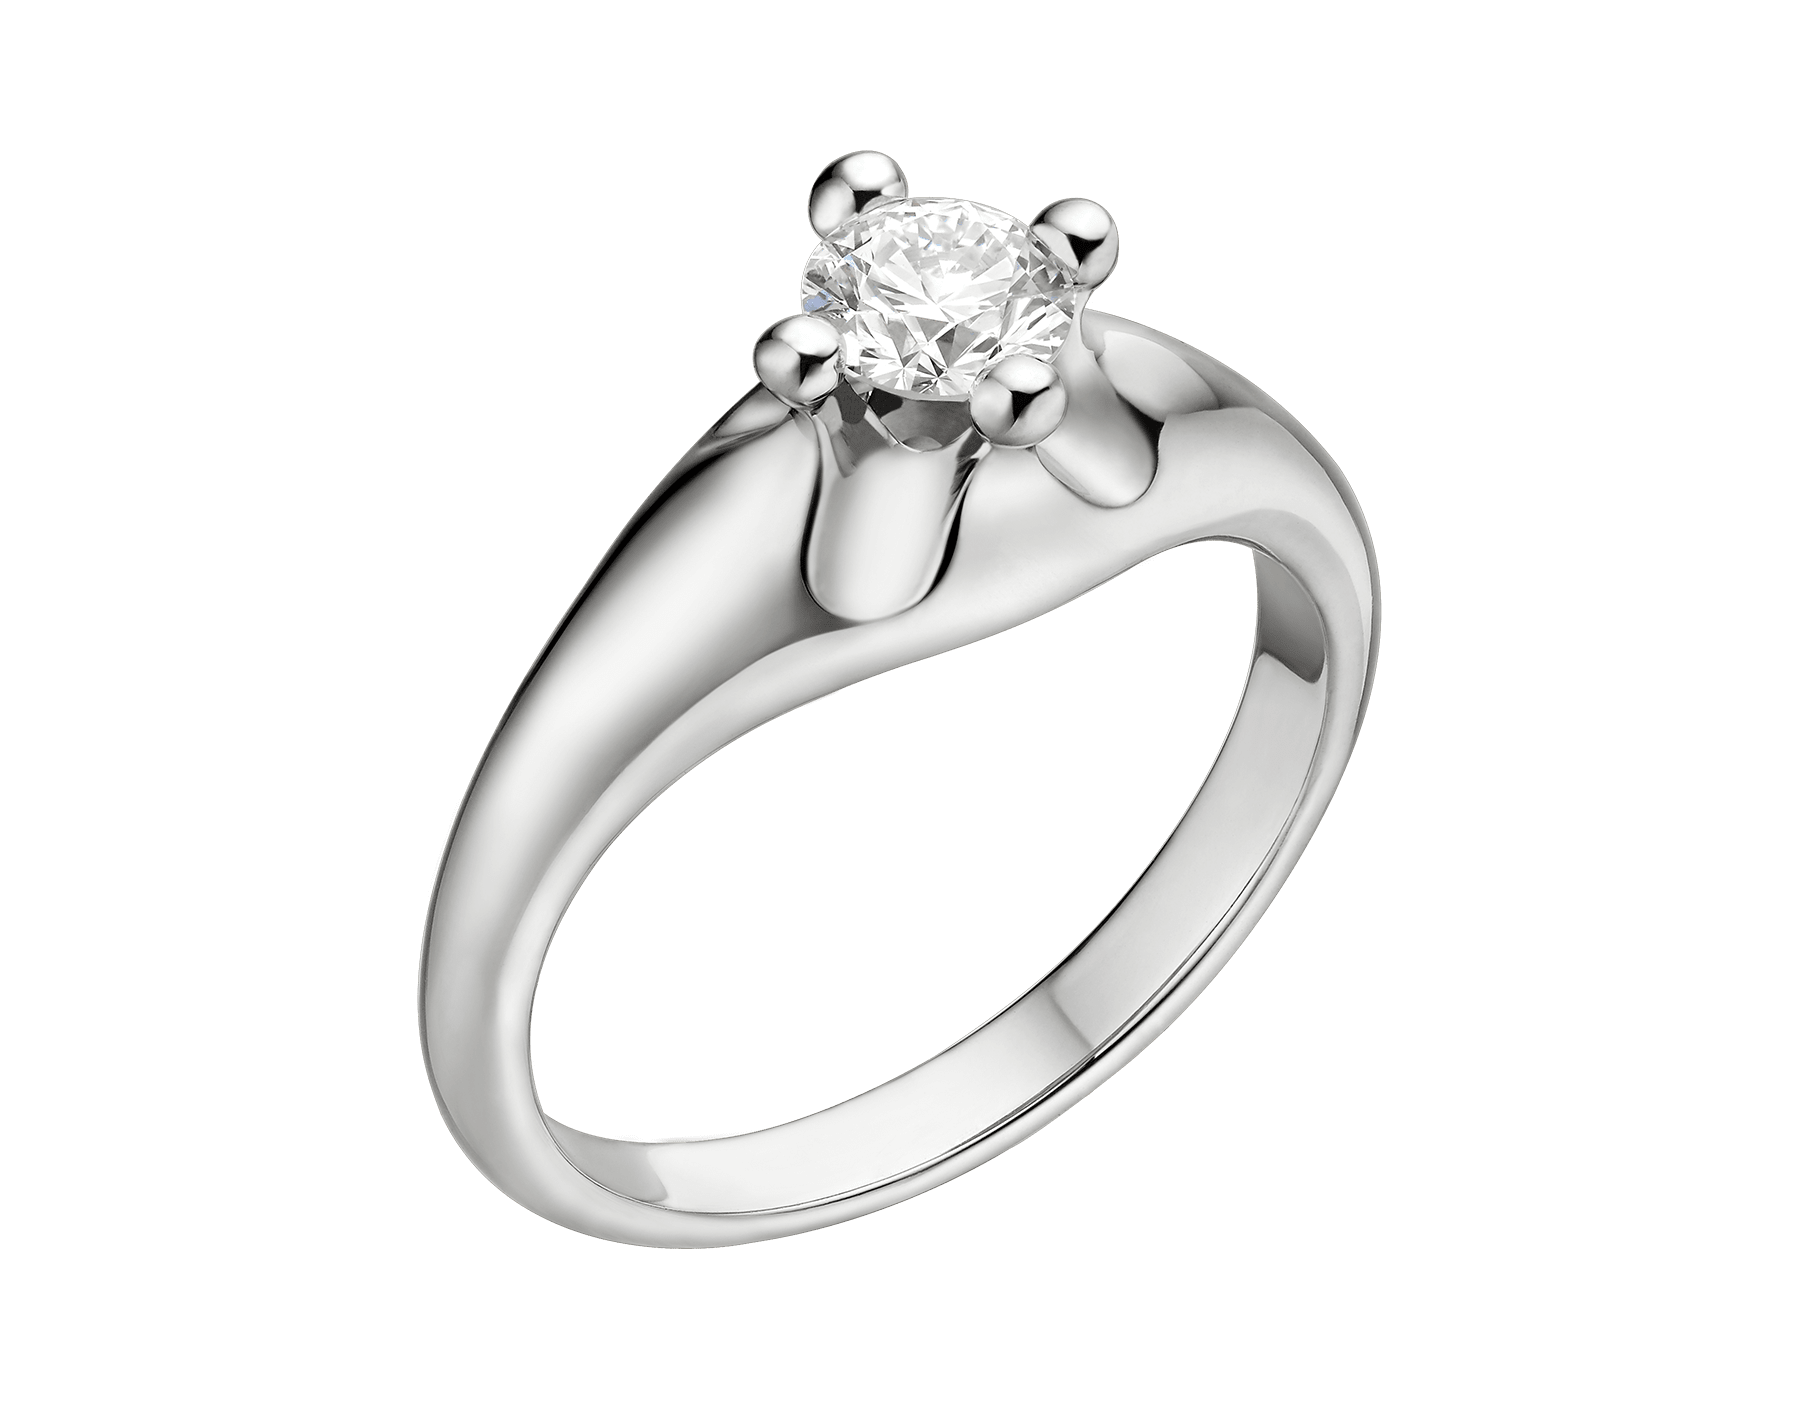 Corona solitaire ring in platinum with round brilliant cut diamond. Available from 0.30 ct. Inspired by the crown and the flower, two enduring symbols of glory and celebration since ancient times. 326293 image 1